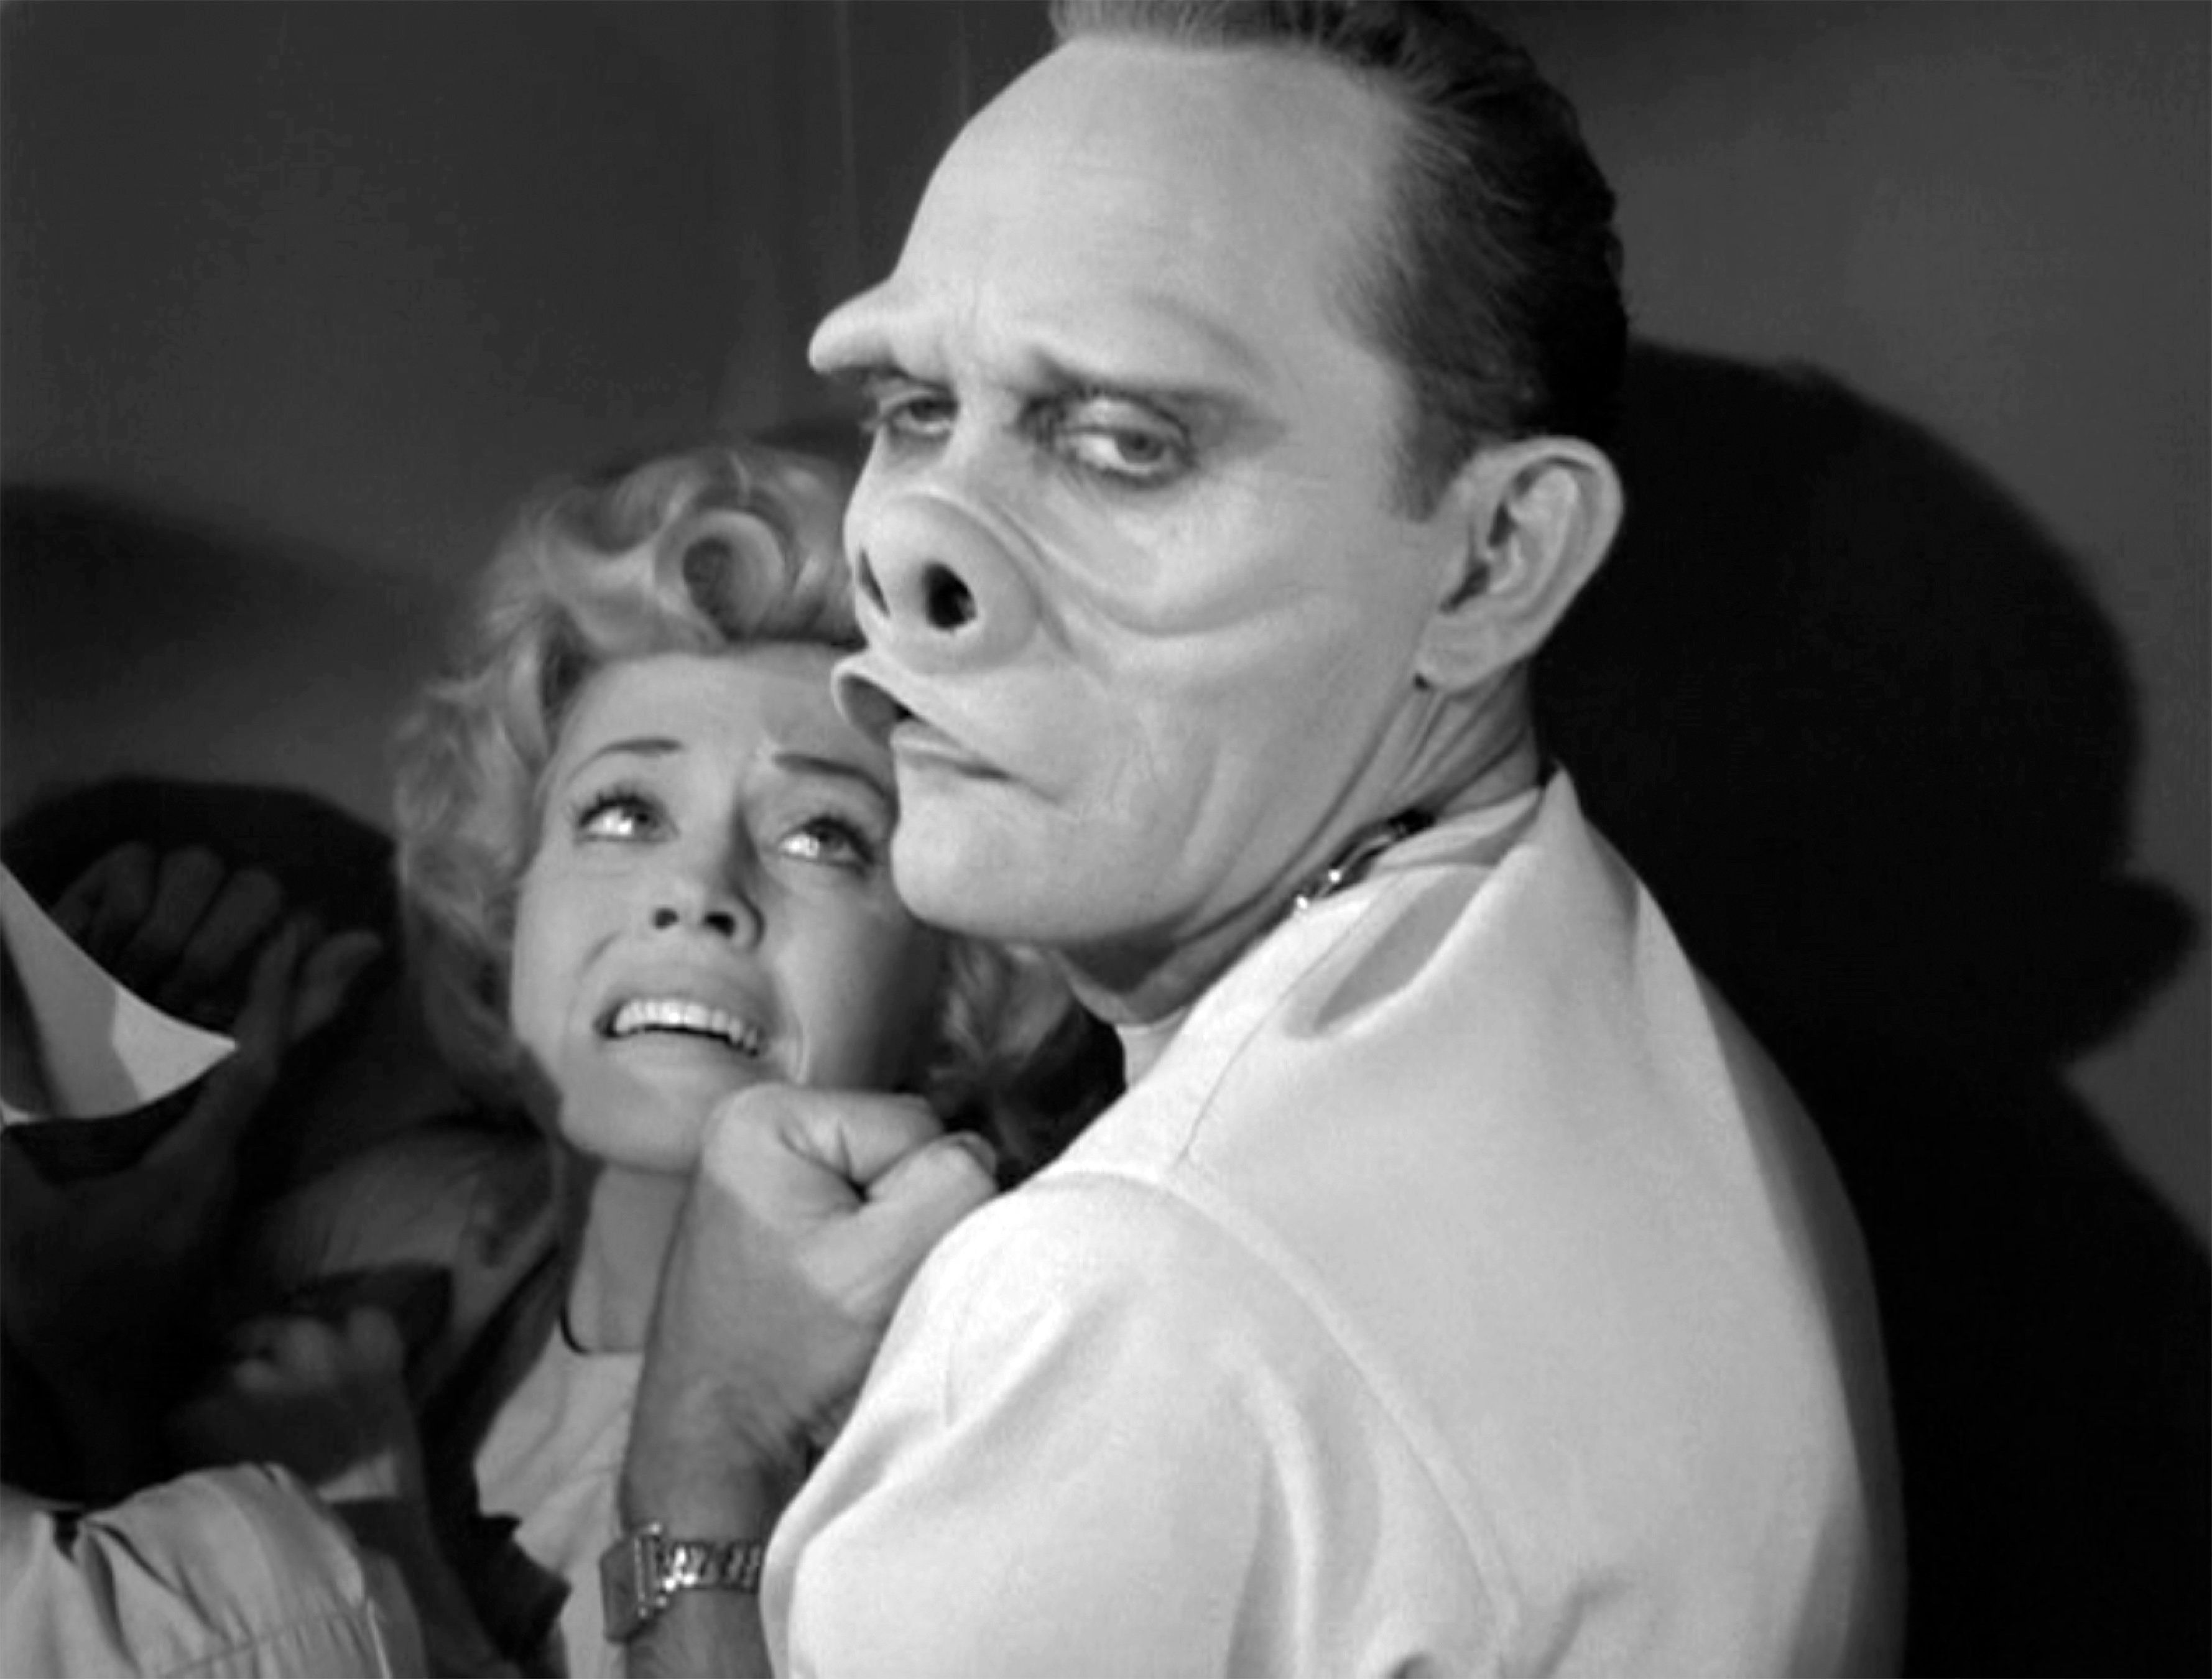 LOS ANGELES - NOVEMBER 11: Twilight Zone episode 'Eye of the Beholder', written by Rod Serling. Donna Douglas as patient and William D. Gordon as the doctor. Originally broadcast on November 11, 1960. Season 2, episode 6. Image is a frame grab. (Photo by CBS via Getty Images)